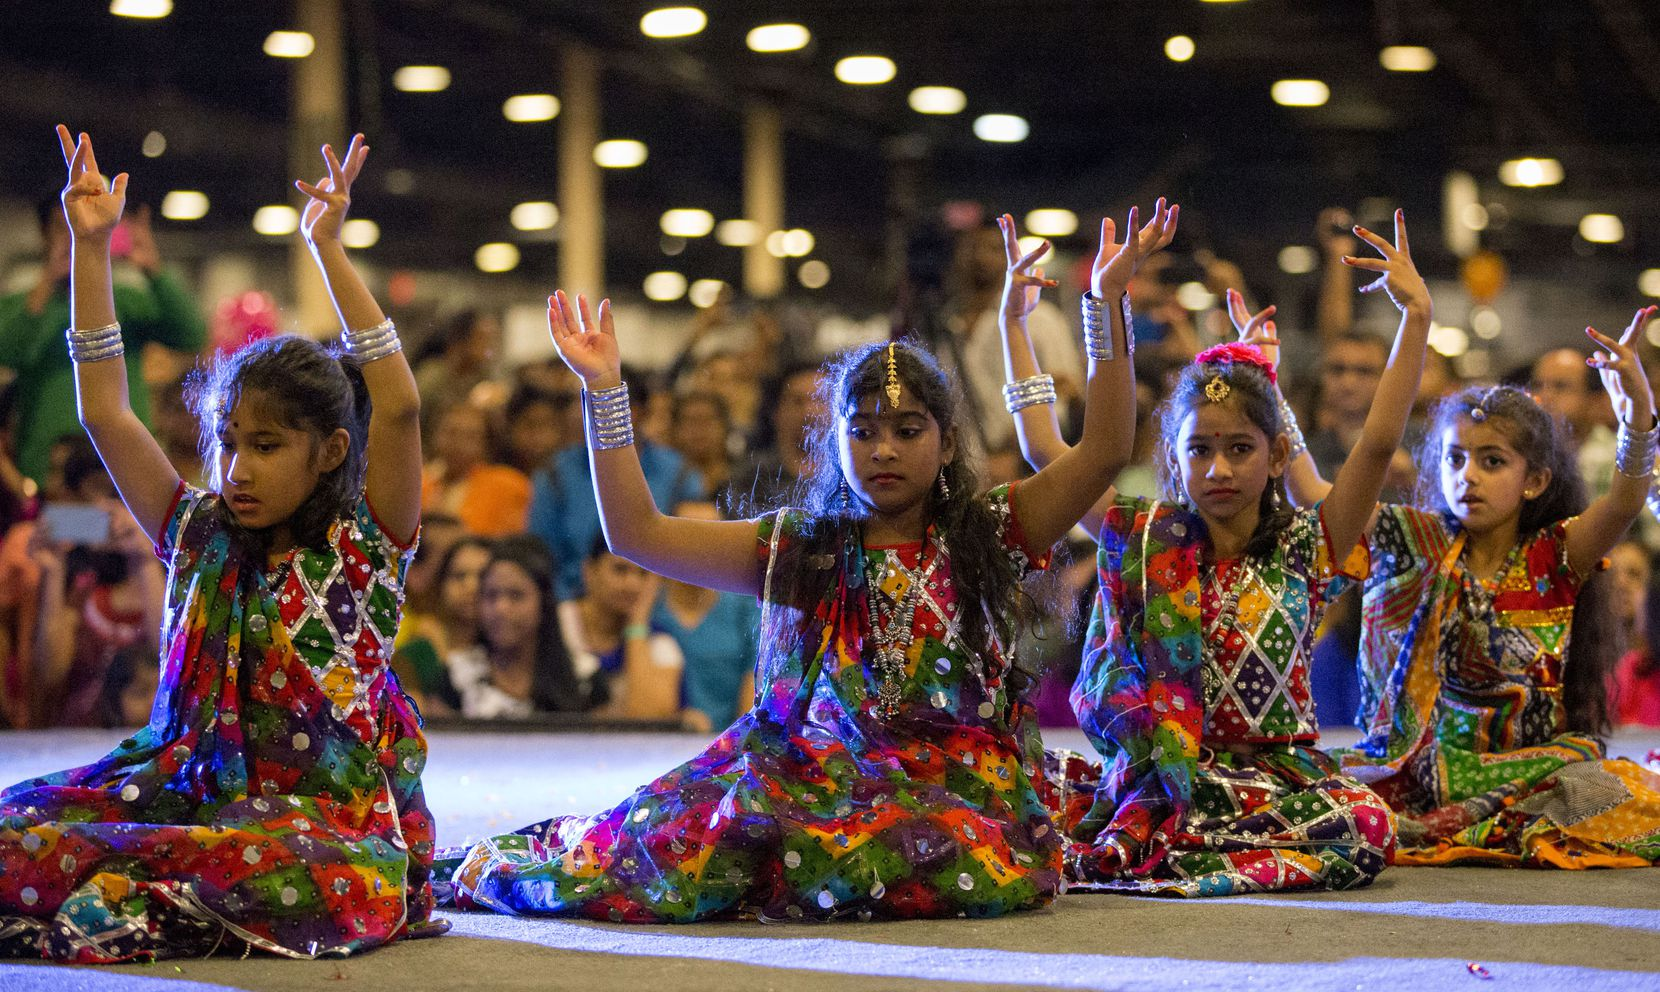 Look for nonstop entertainment by local and Bollywood performers at this weekend's Diwali Mela festivities at Cotton Bowl Stadium in Fair Park.